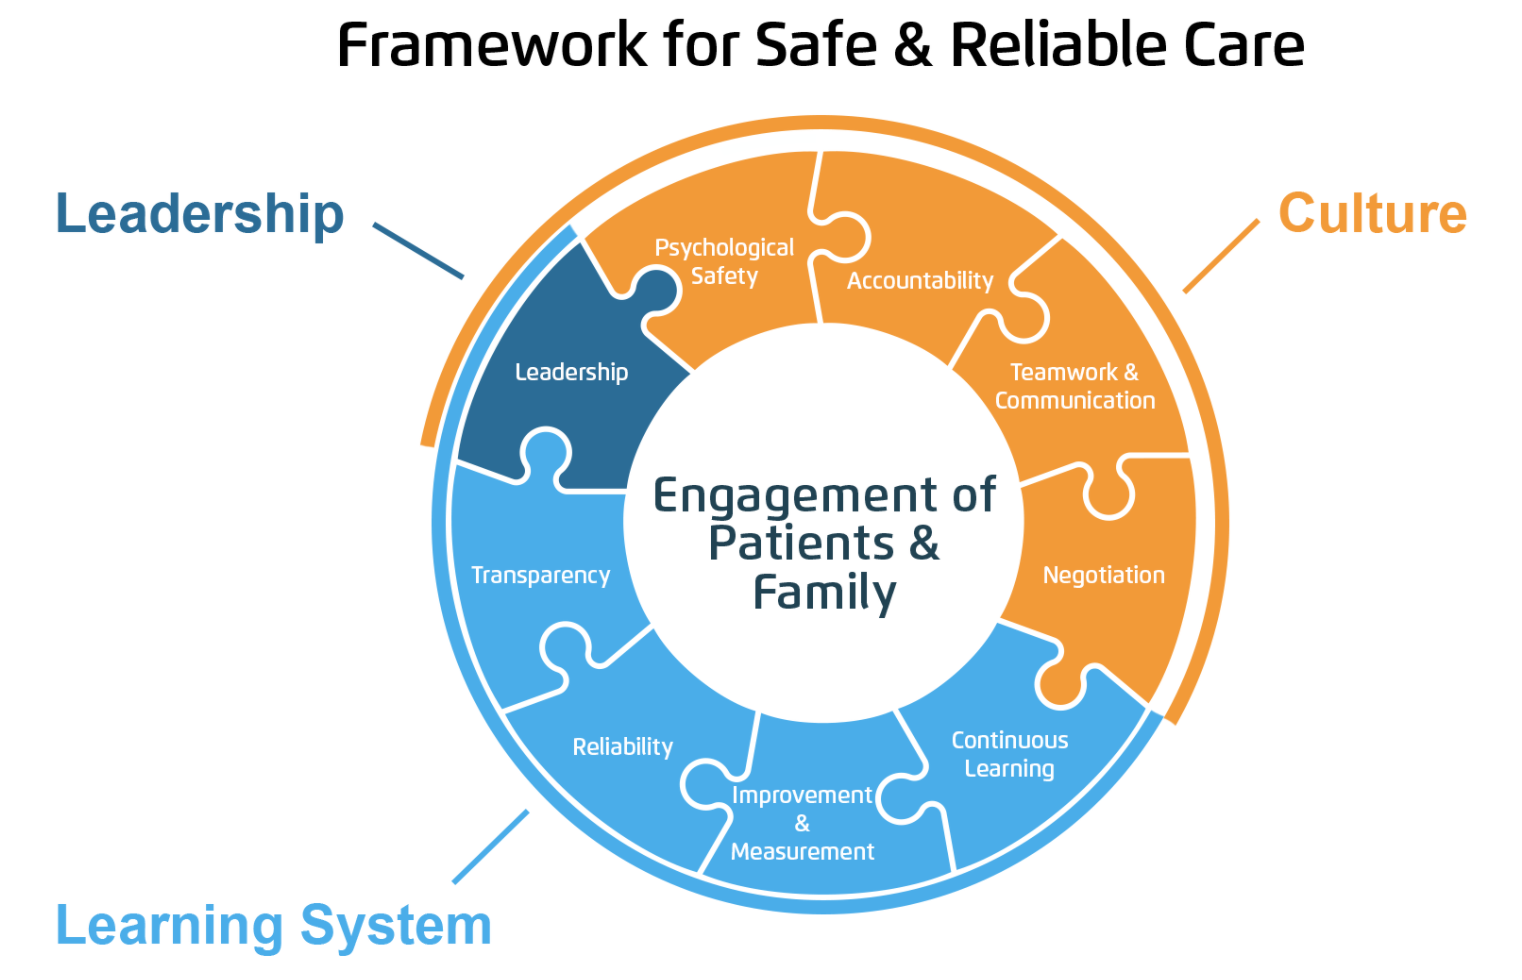 <b>Framework for Safe & Reliable Care</b>Source: HealthCatalyst, 2019, www.healthcatalyst.com/insights/high-reliability-organizations-in-healthcare-framework